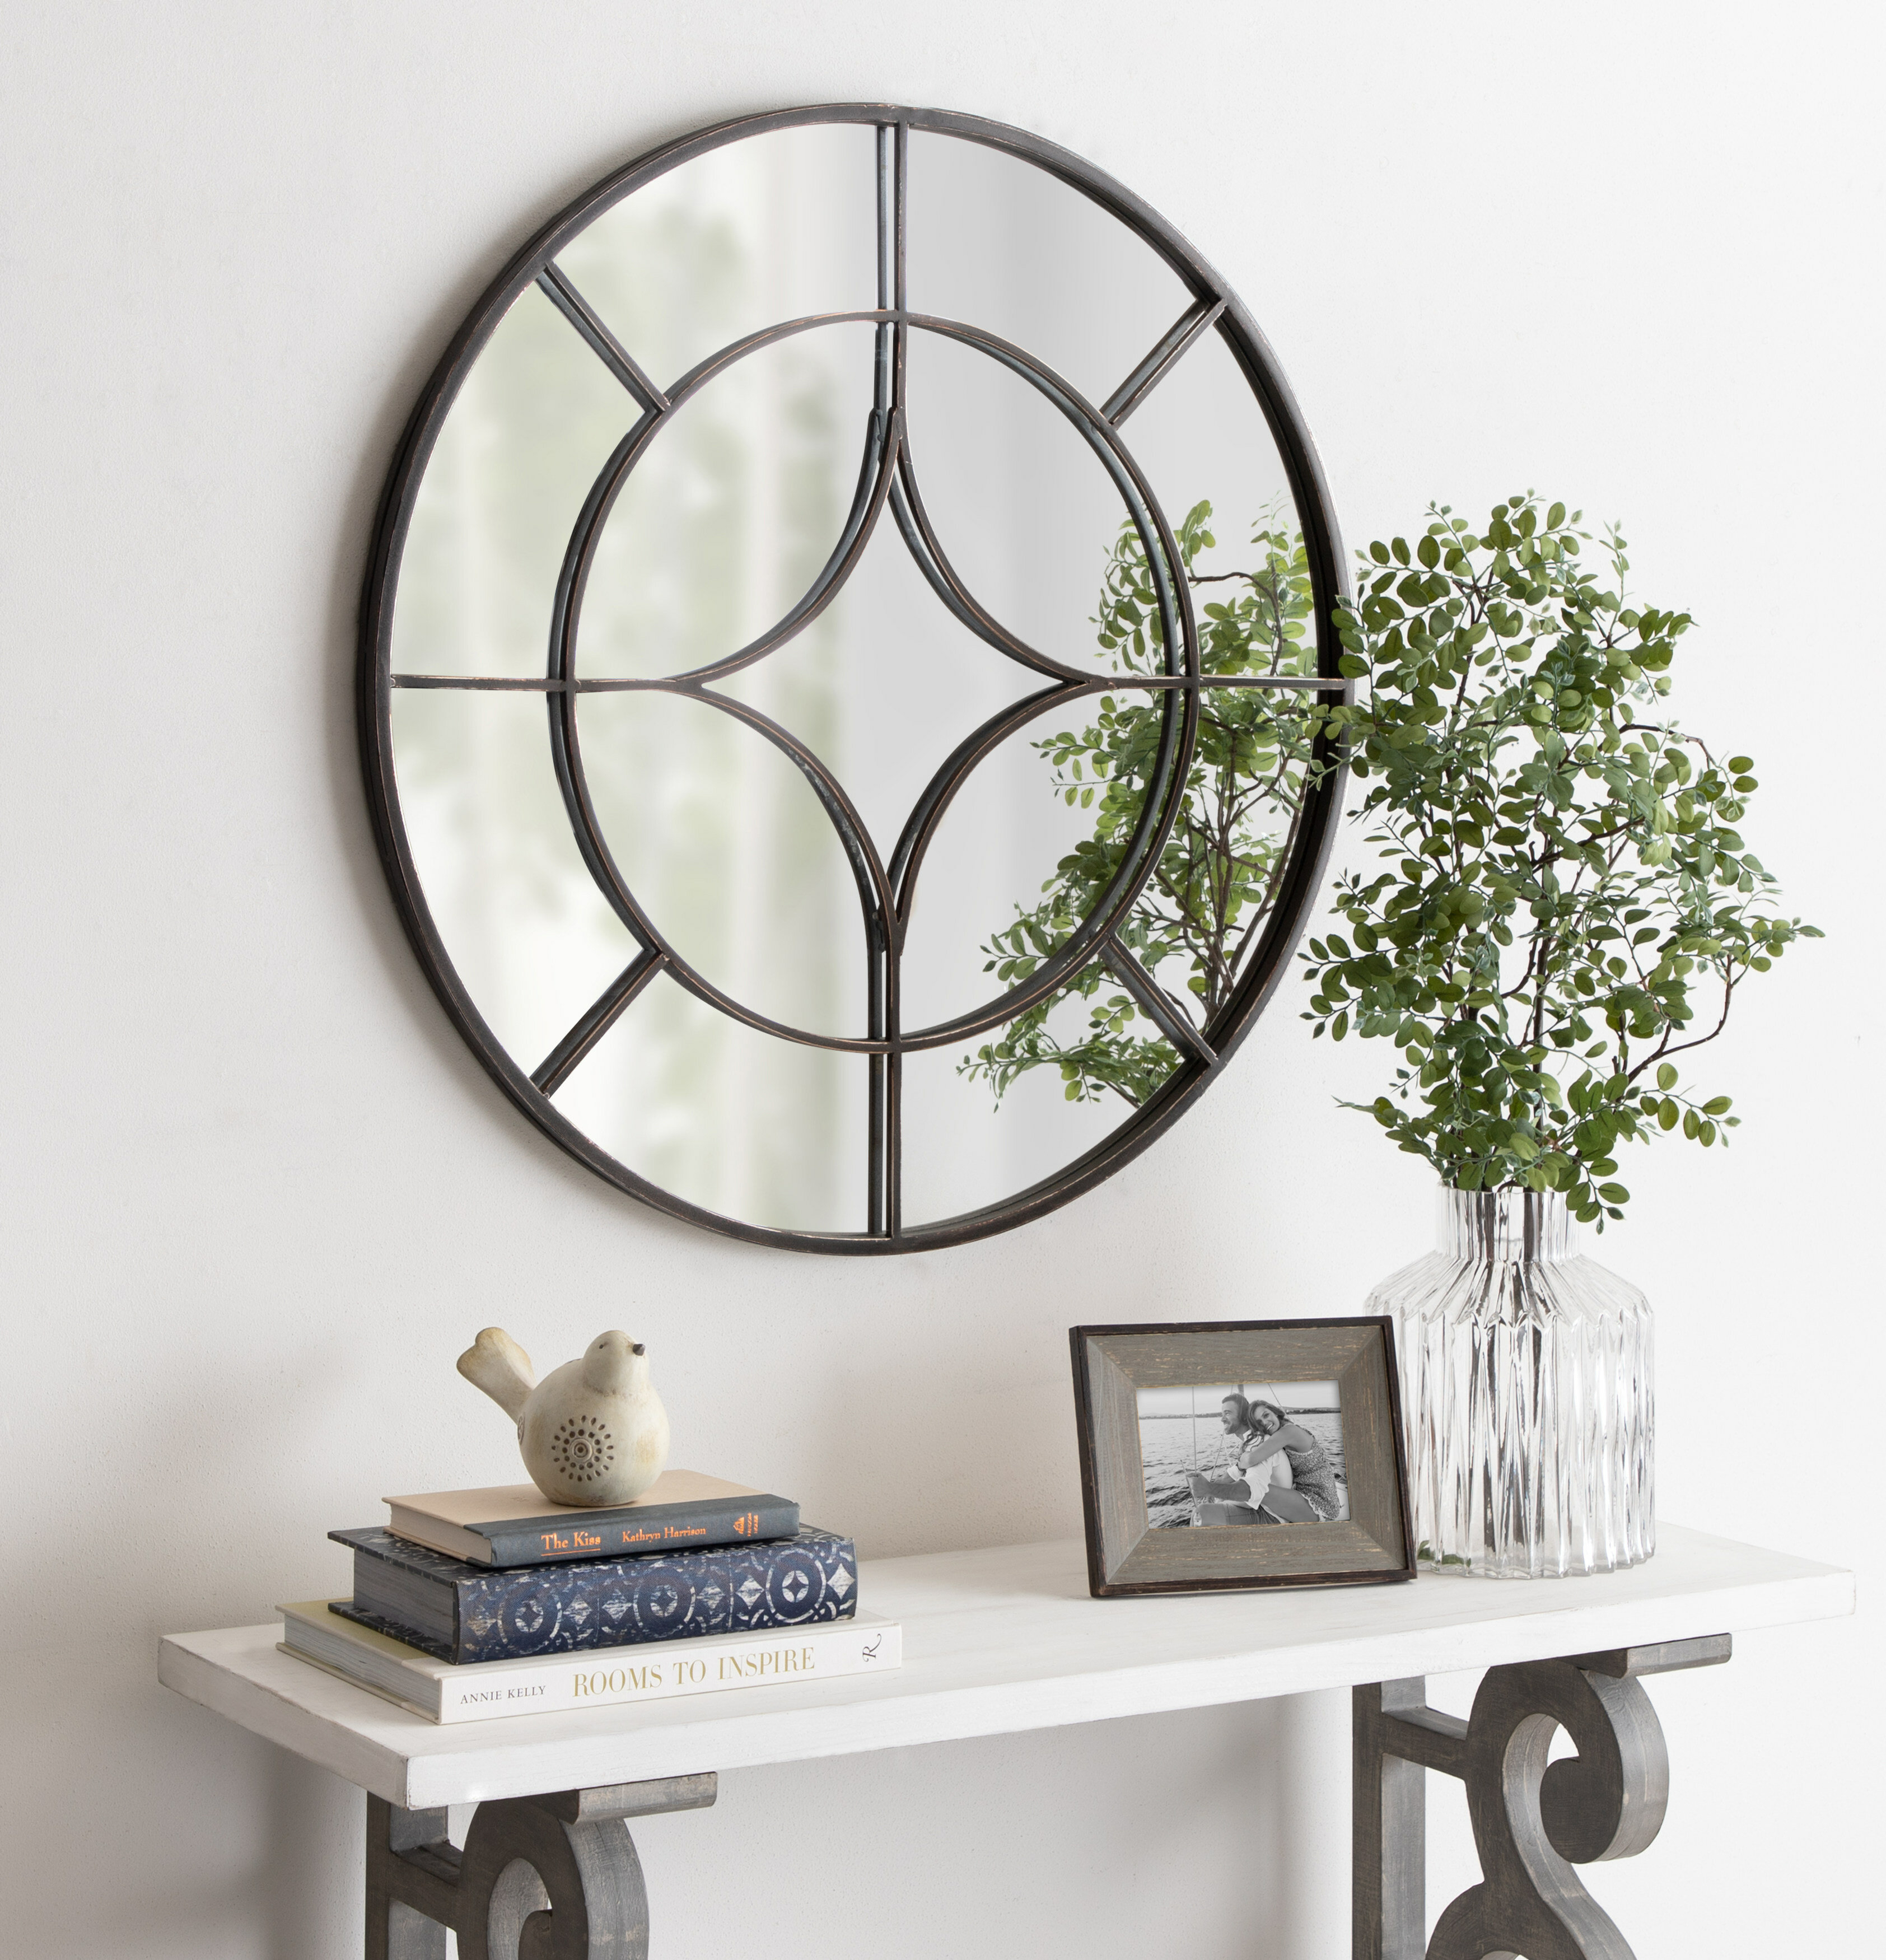 Hanska Industrial Modern Overlaid Beveled Frameless Accent Mirror pertaining to Peetz Modern Rustic Accent Mirrors (Image 15 of 30)